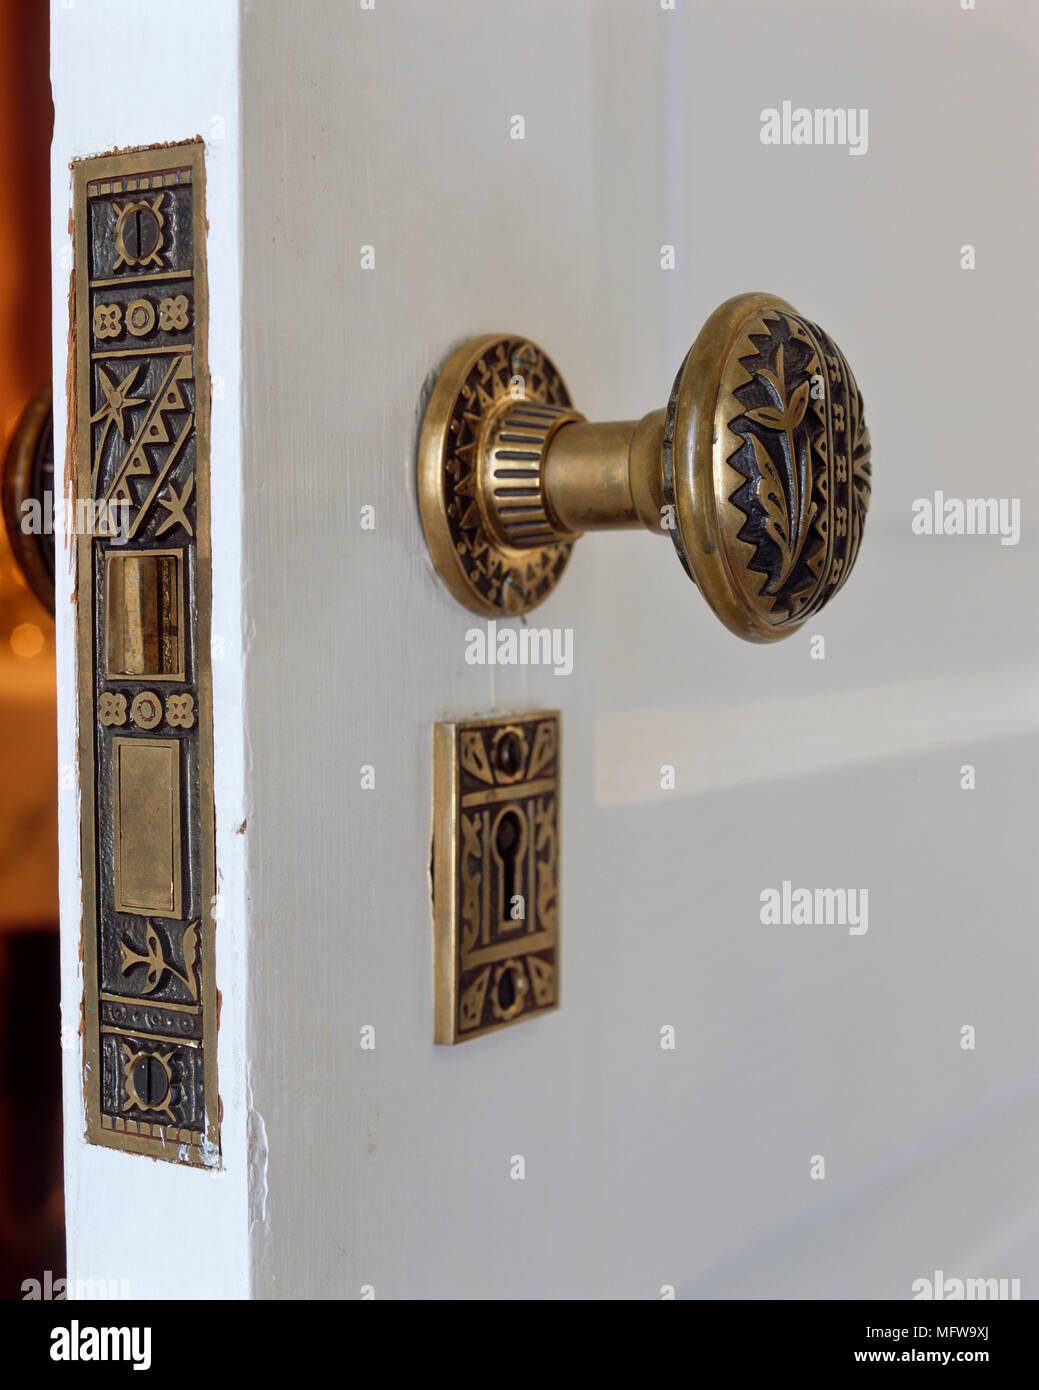 Close Up Detail Of Decorative Brass Door Handle